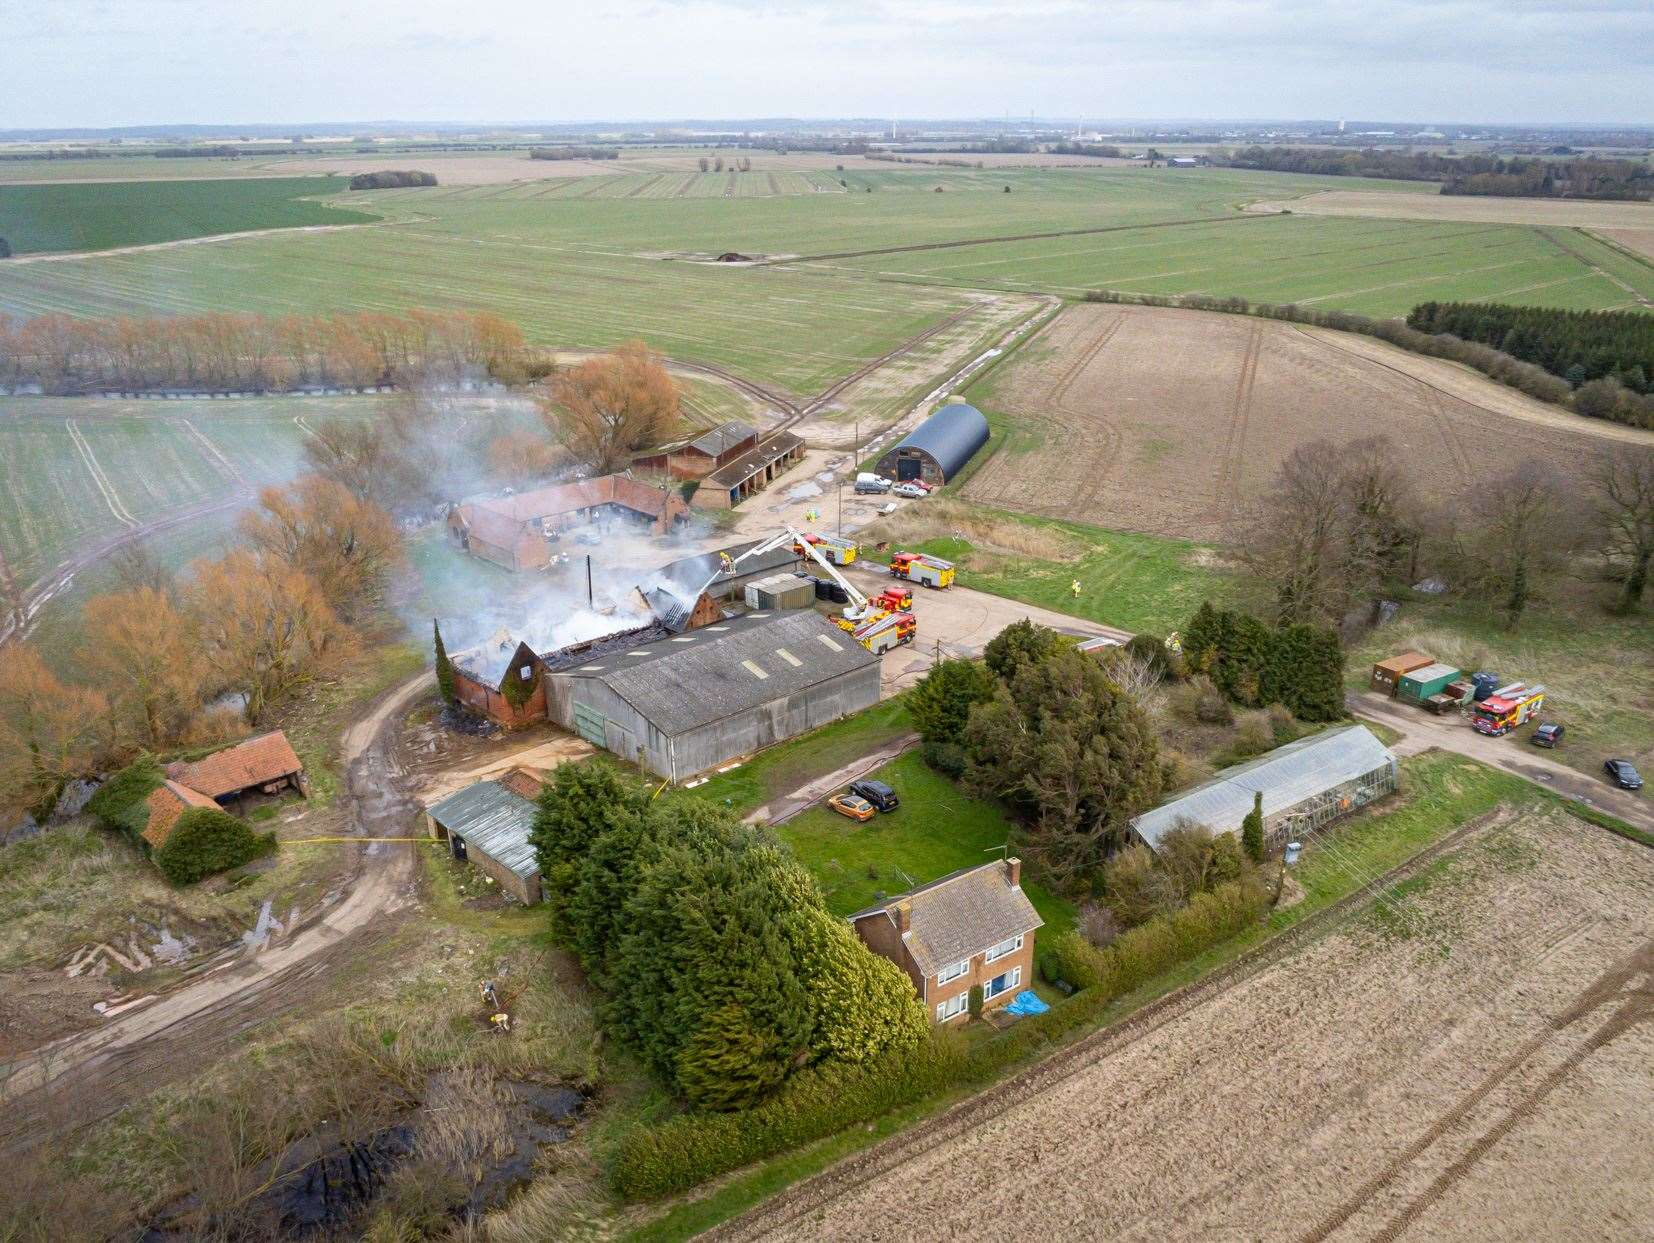 Flashback to March 2020 when firefighters attended a large agricultural fire at a farm building off Rhoon Road in Terrington St Clement.